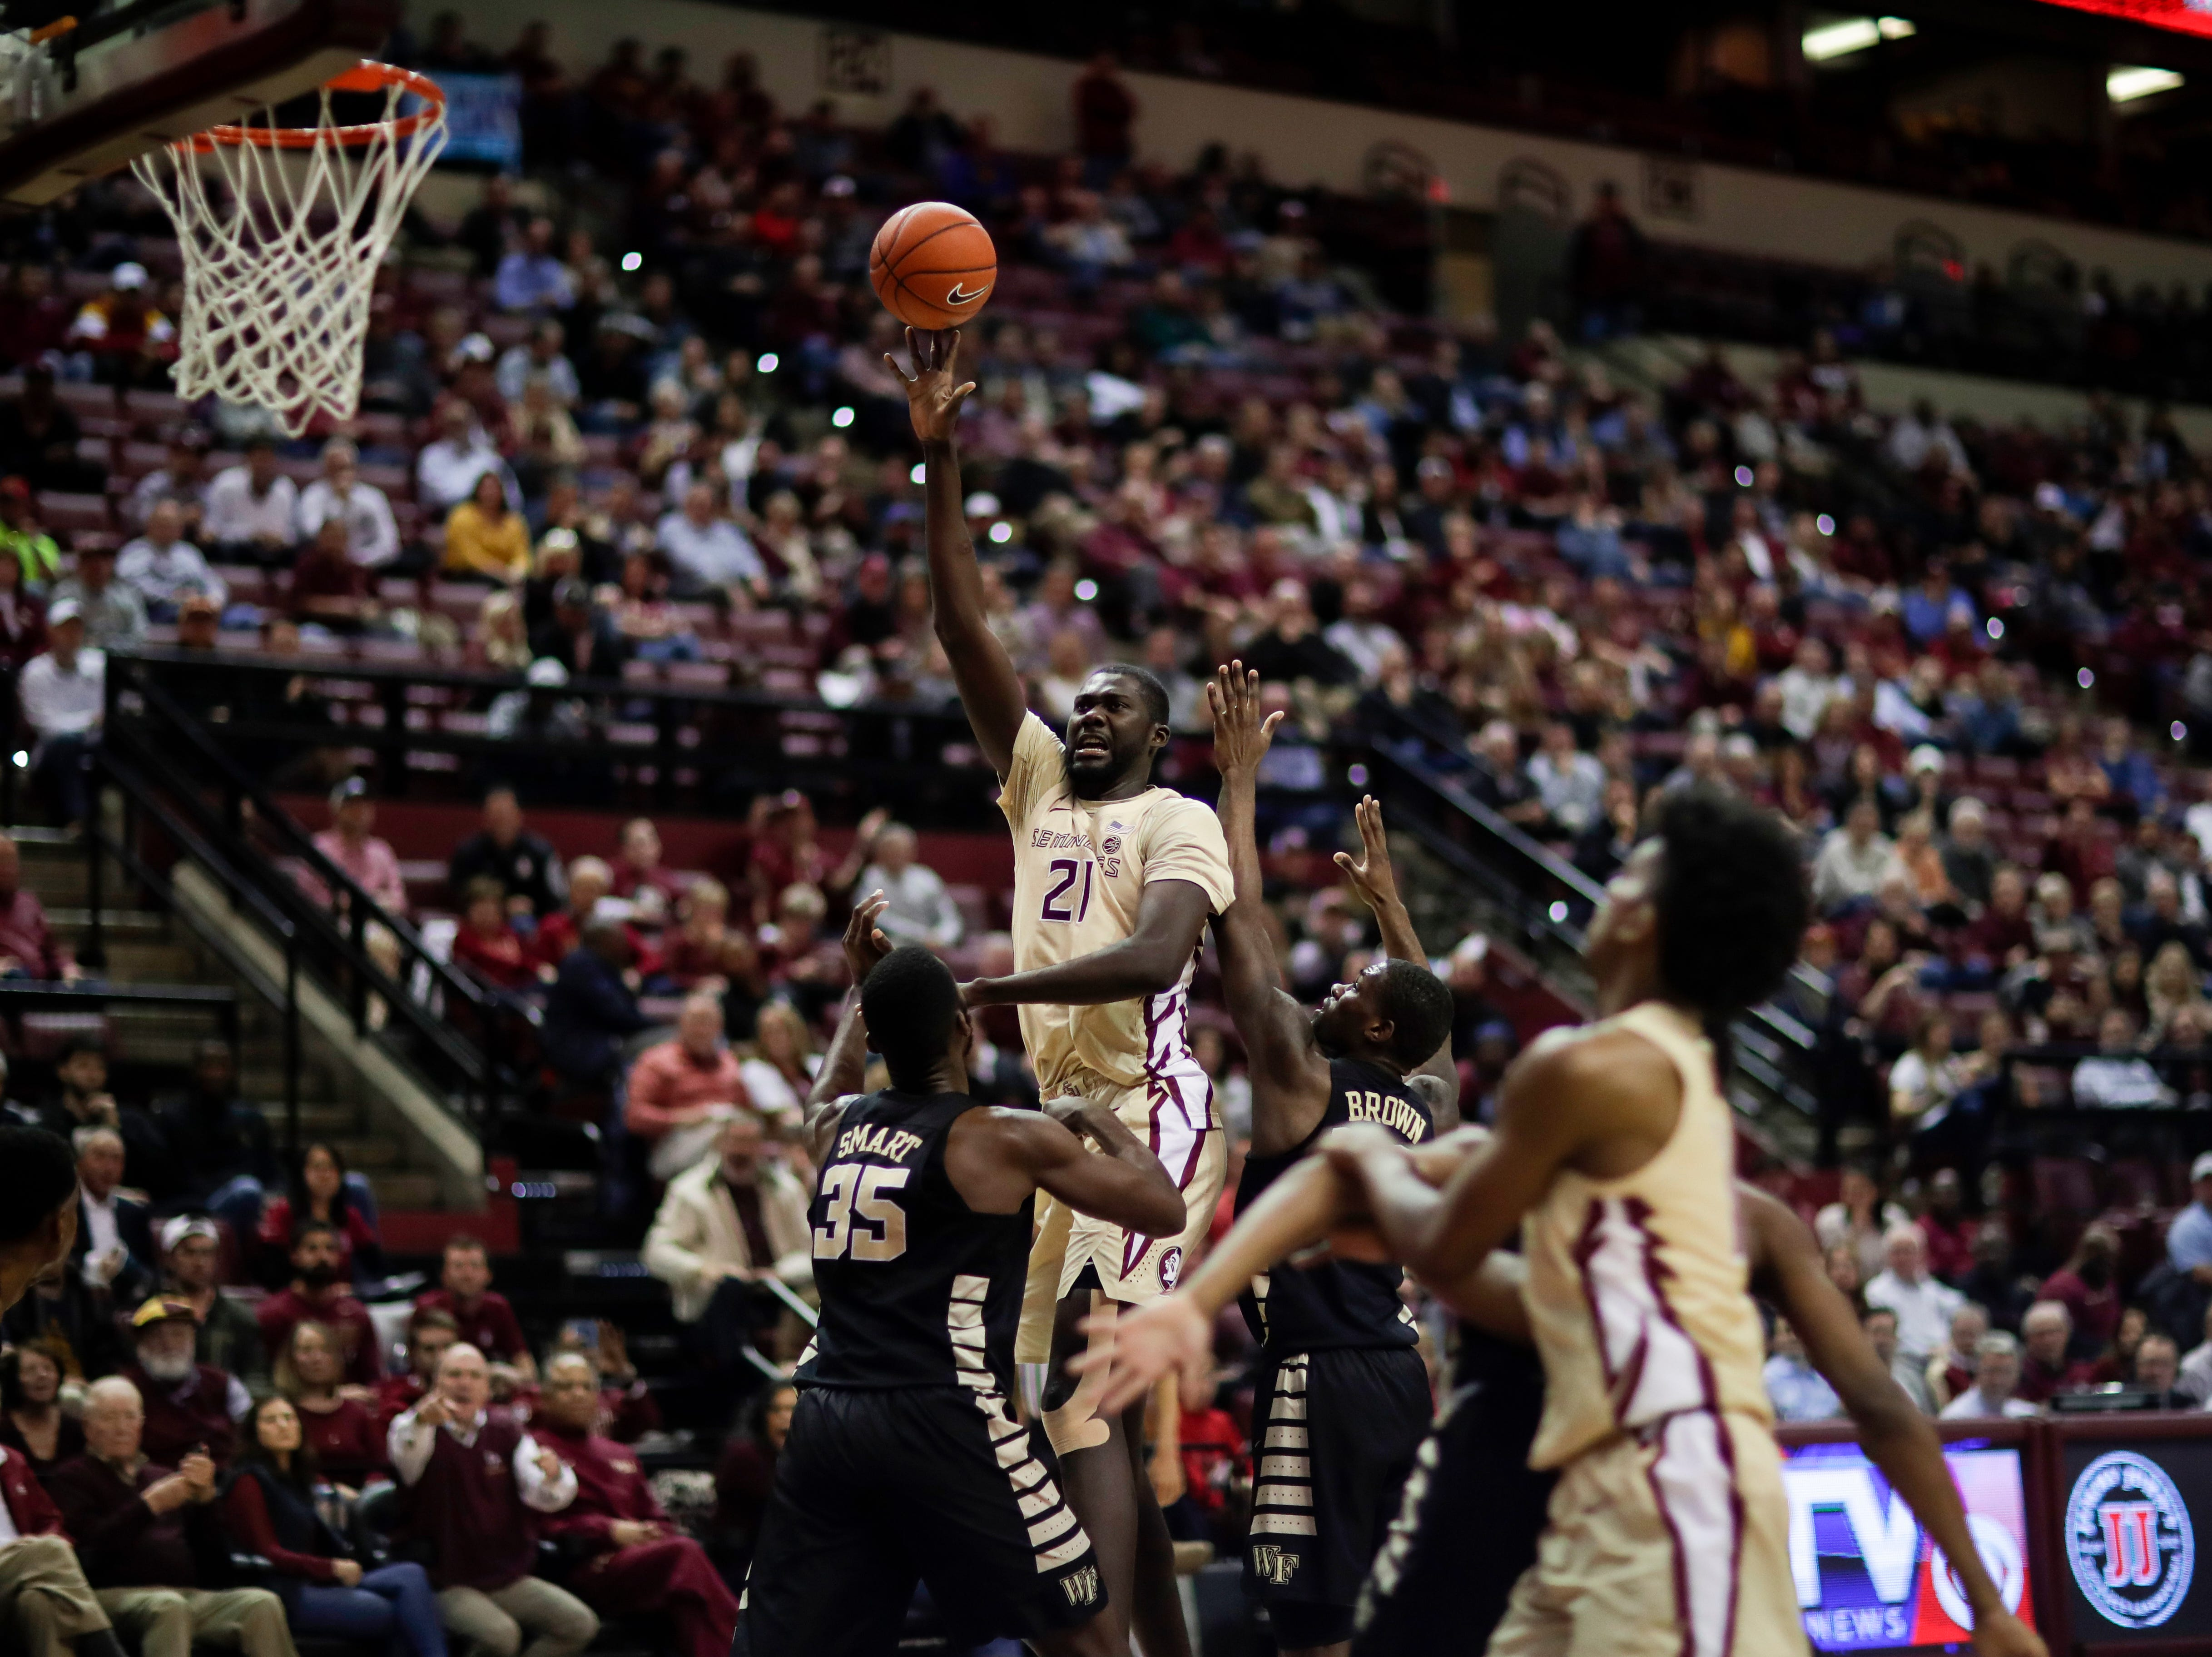 Florida State Seminoles center Christ Koumadje (21) tips up a shot during a game between FSU and Wake Forest at the Donald L. Tucker Civic Center Wednesday, Feb. 13, 2019.